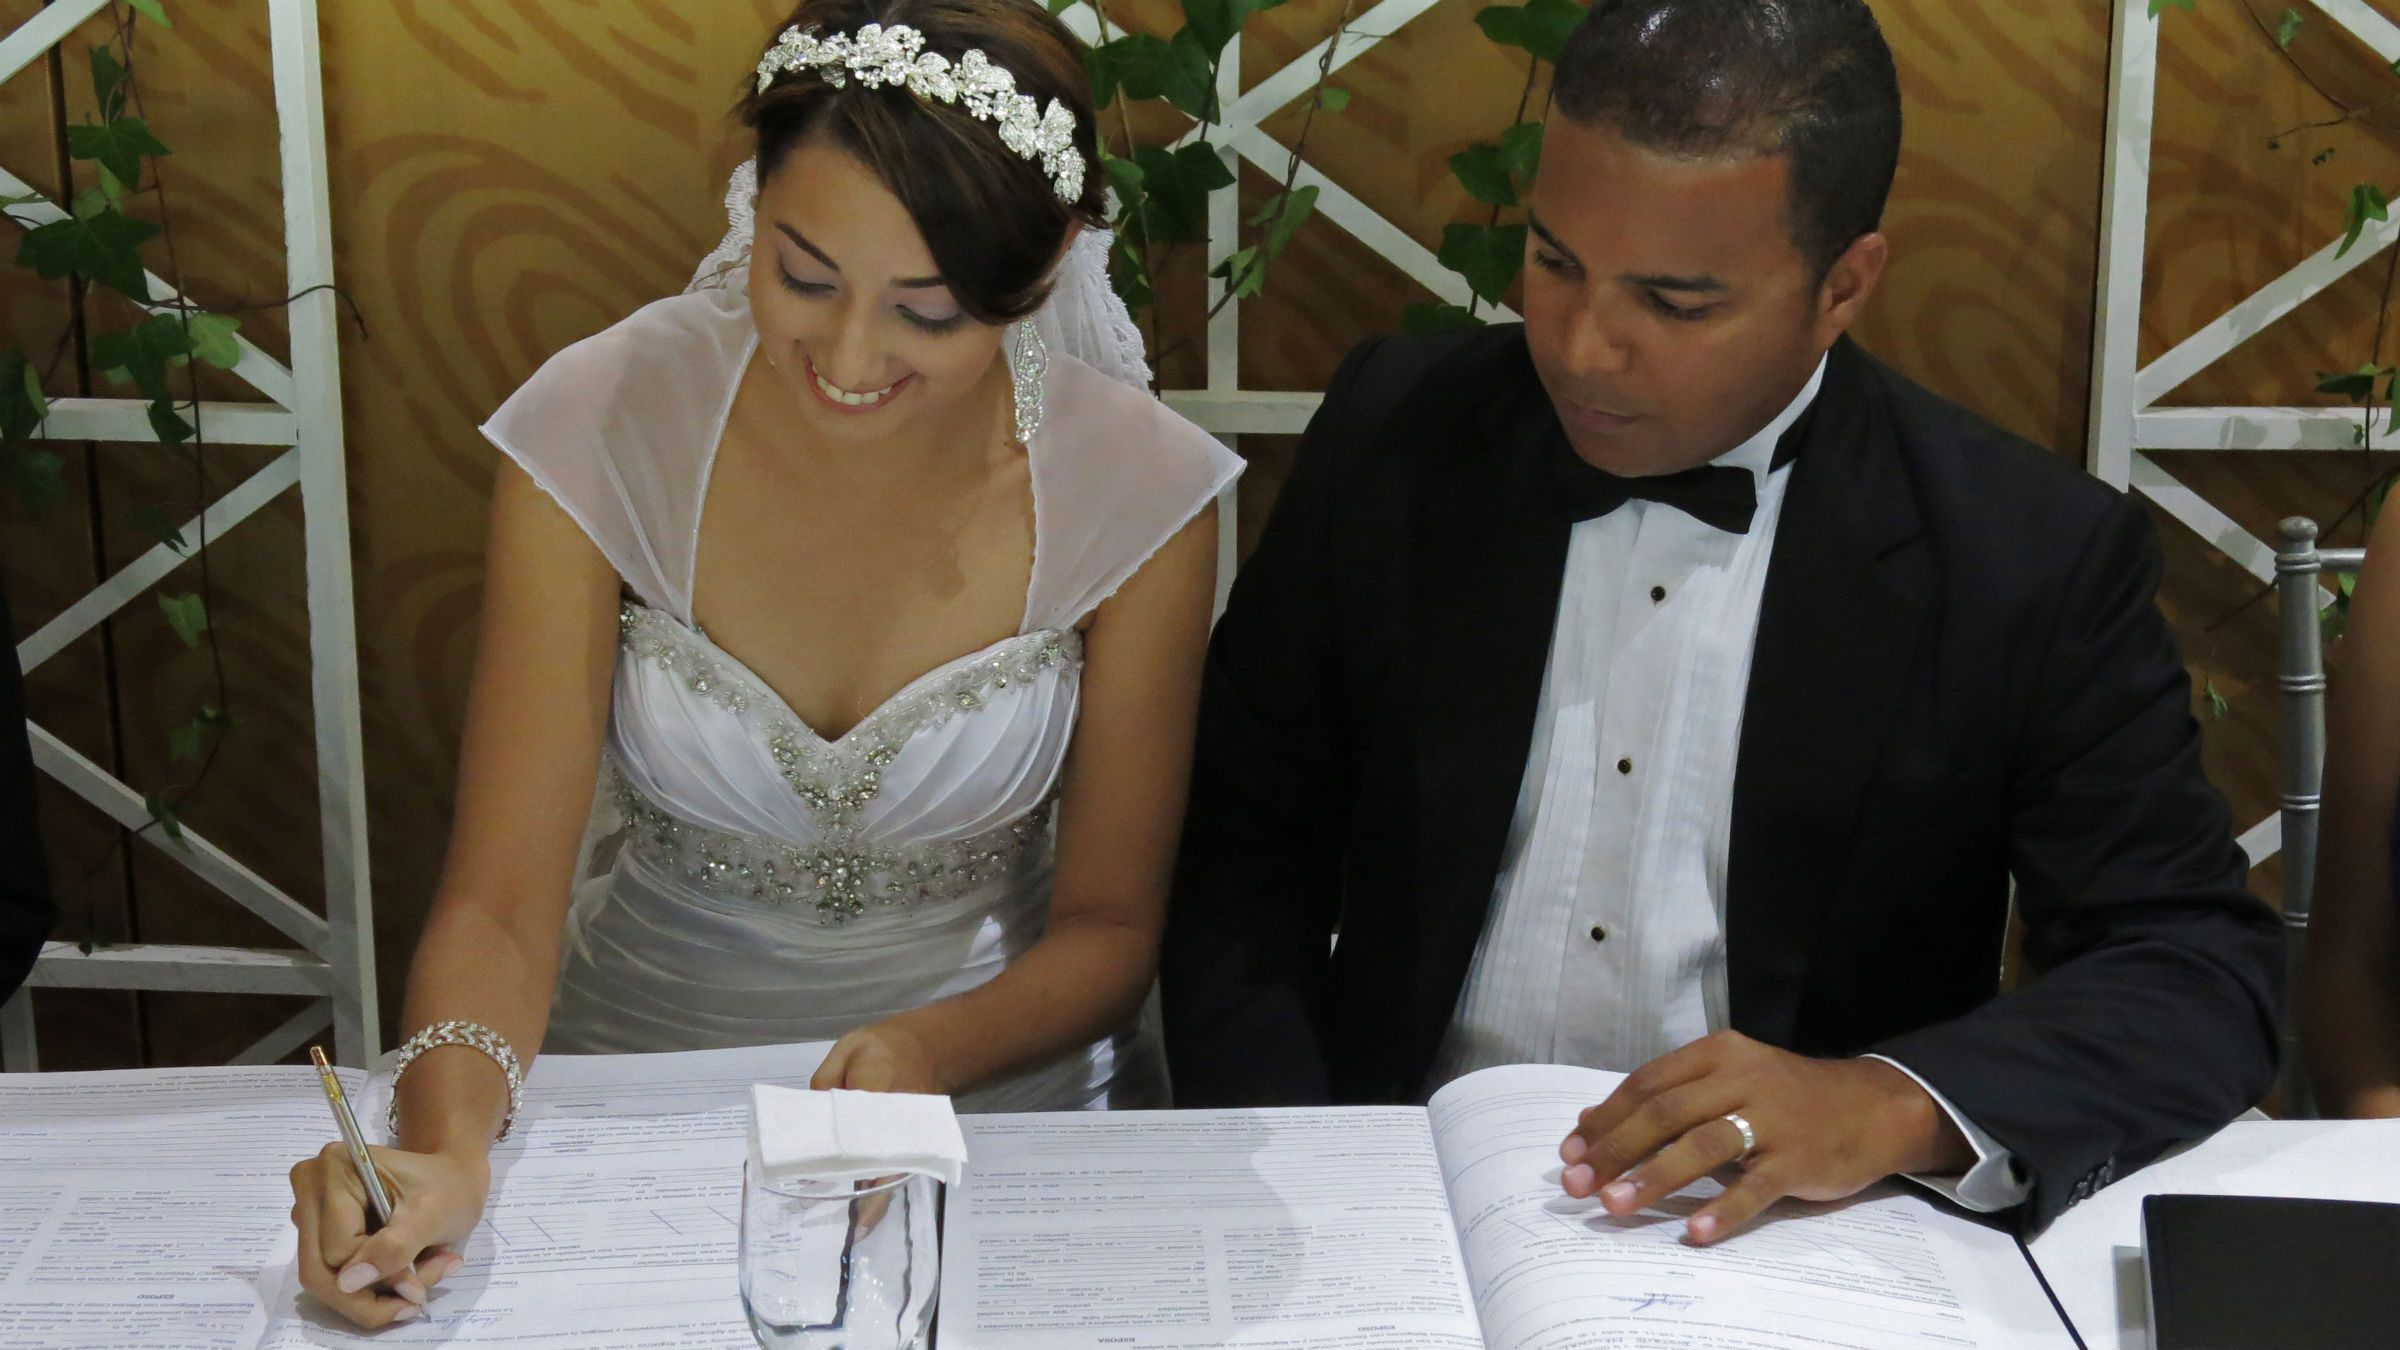 Bride Leidy Laura Cabreja signs a marriage license as her groom Baldwin Rodriguez looks on during their Jehovah's Witness wedding ceremony in Santo Domingo, Dominican Republic, Wednesday, Aug. 28, 2013. The couple became the first pair to marry under a new law recognizing religious weddings not held in a Roman Catholic church. Previously, marriages received legal recognition only if held at the civil registry or in a Catholic ceremony. (AP Photo/Ezequiel Abiu Lopez)